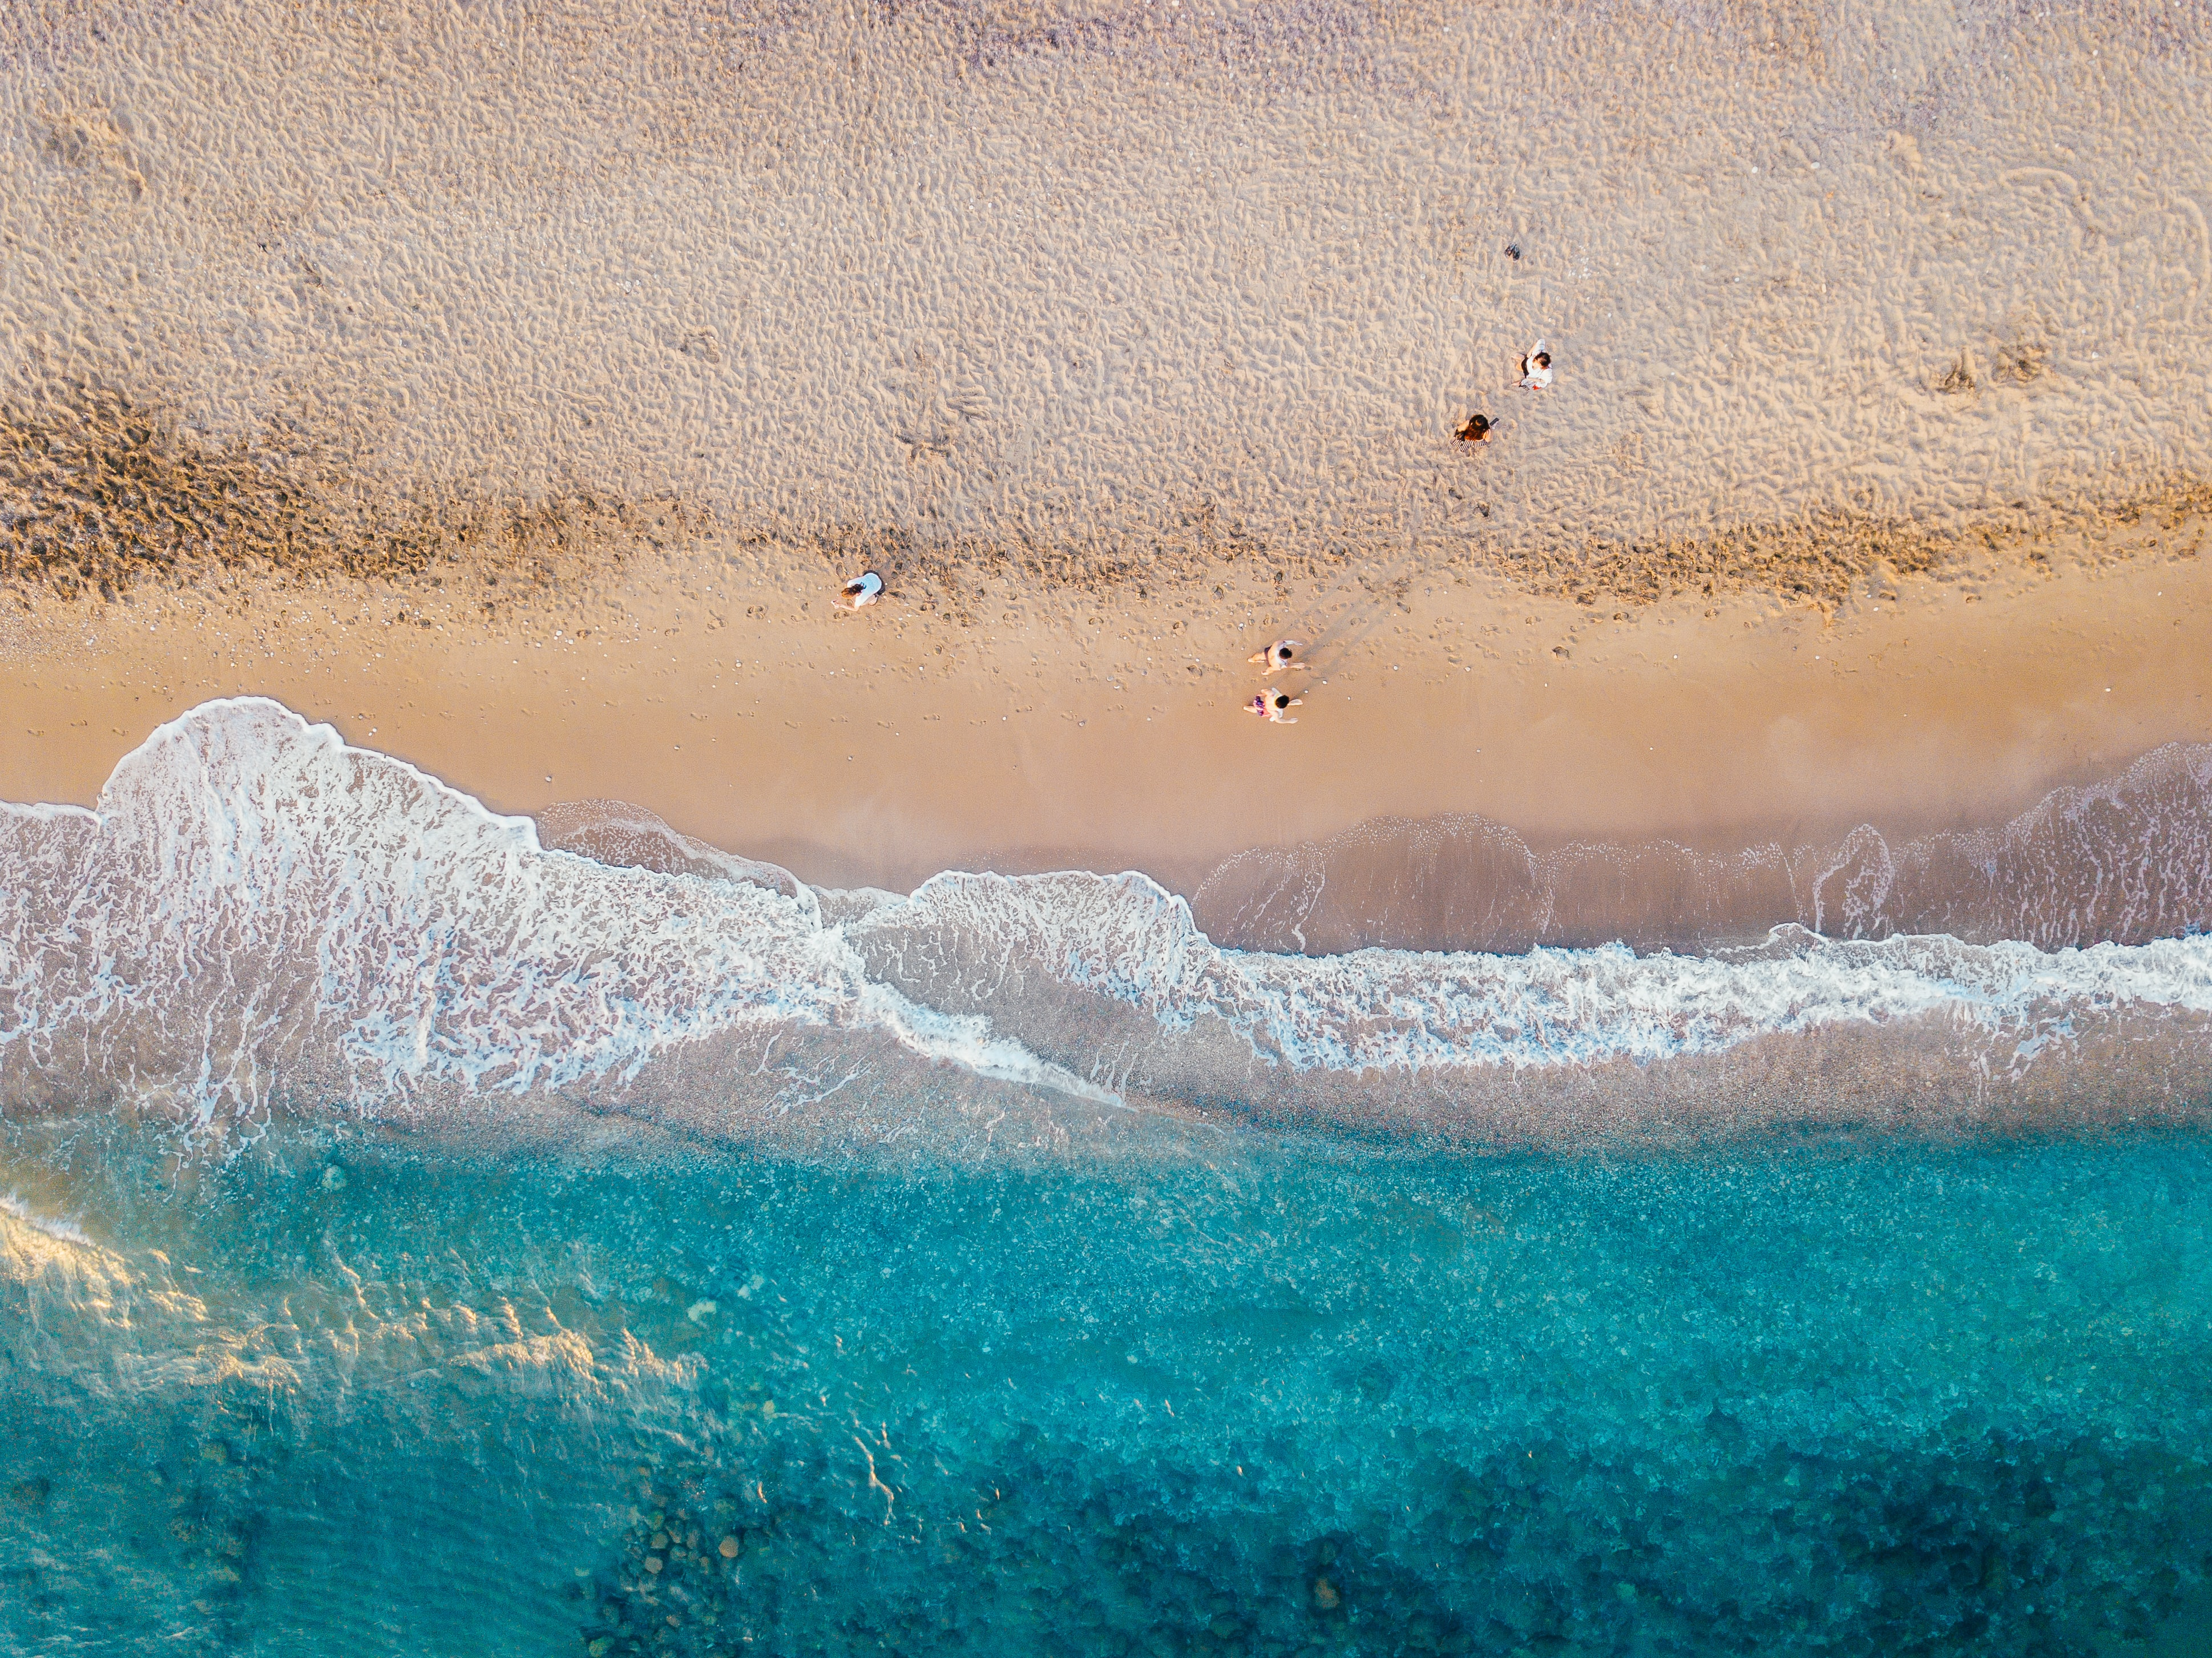 aerial photo of people standing on sand beach near teal sea wave at daytime